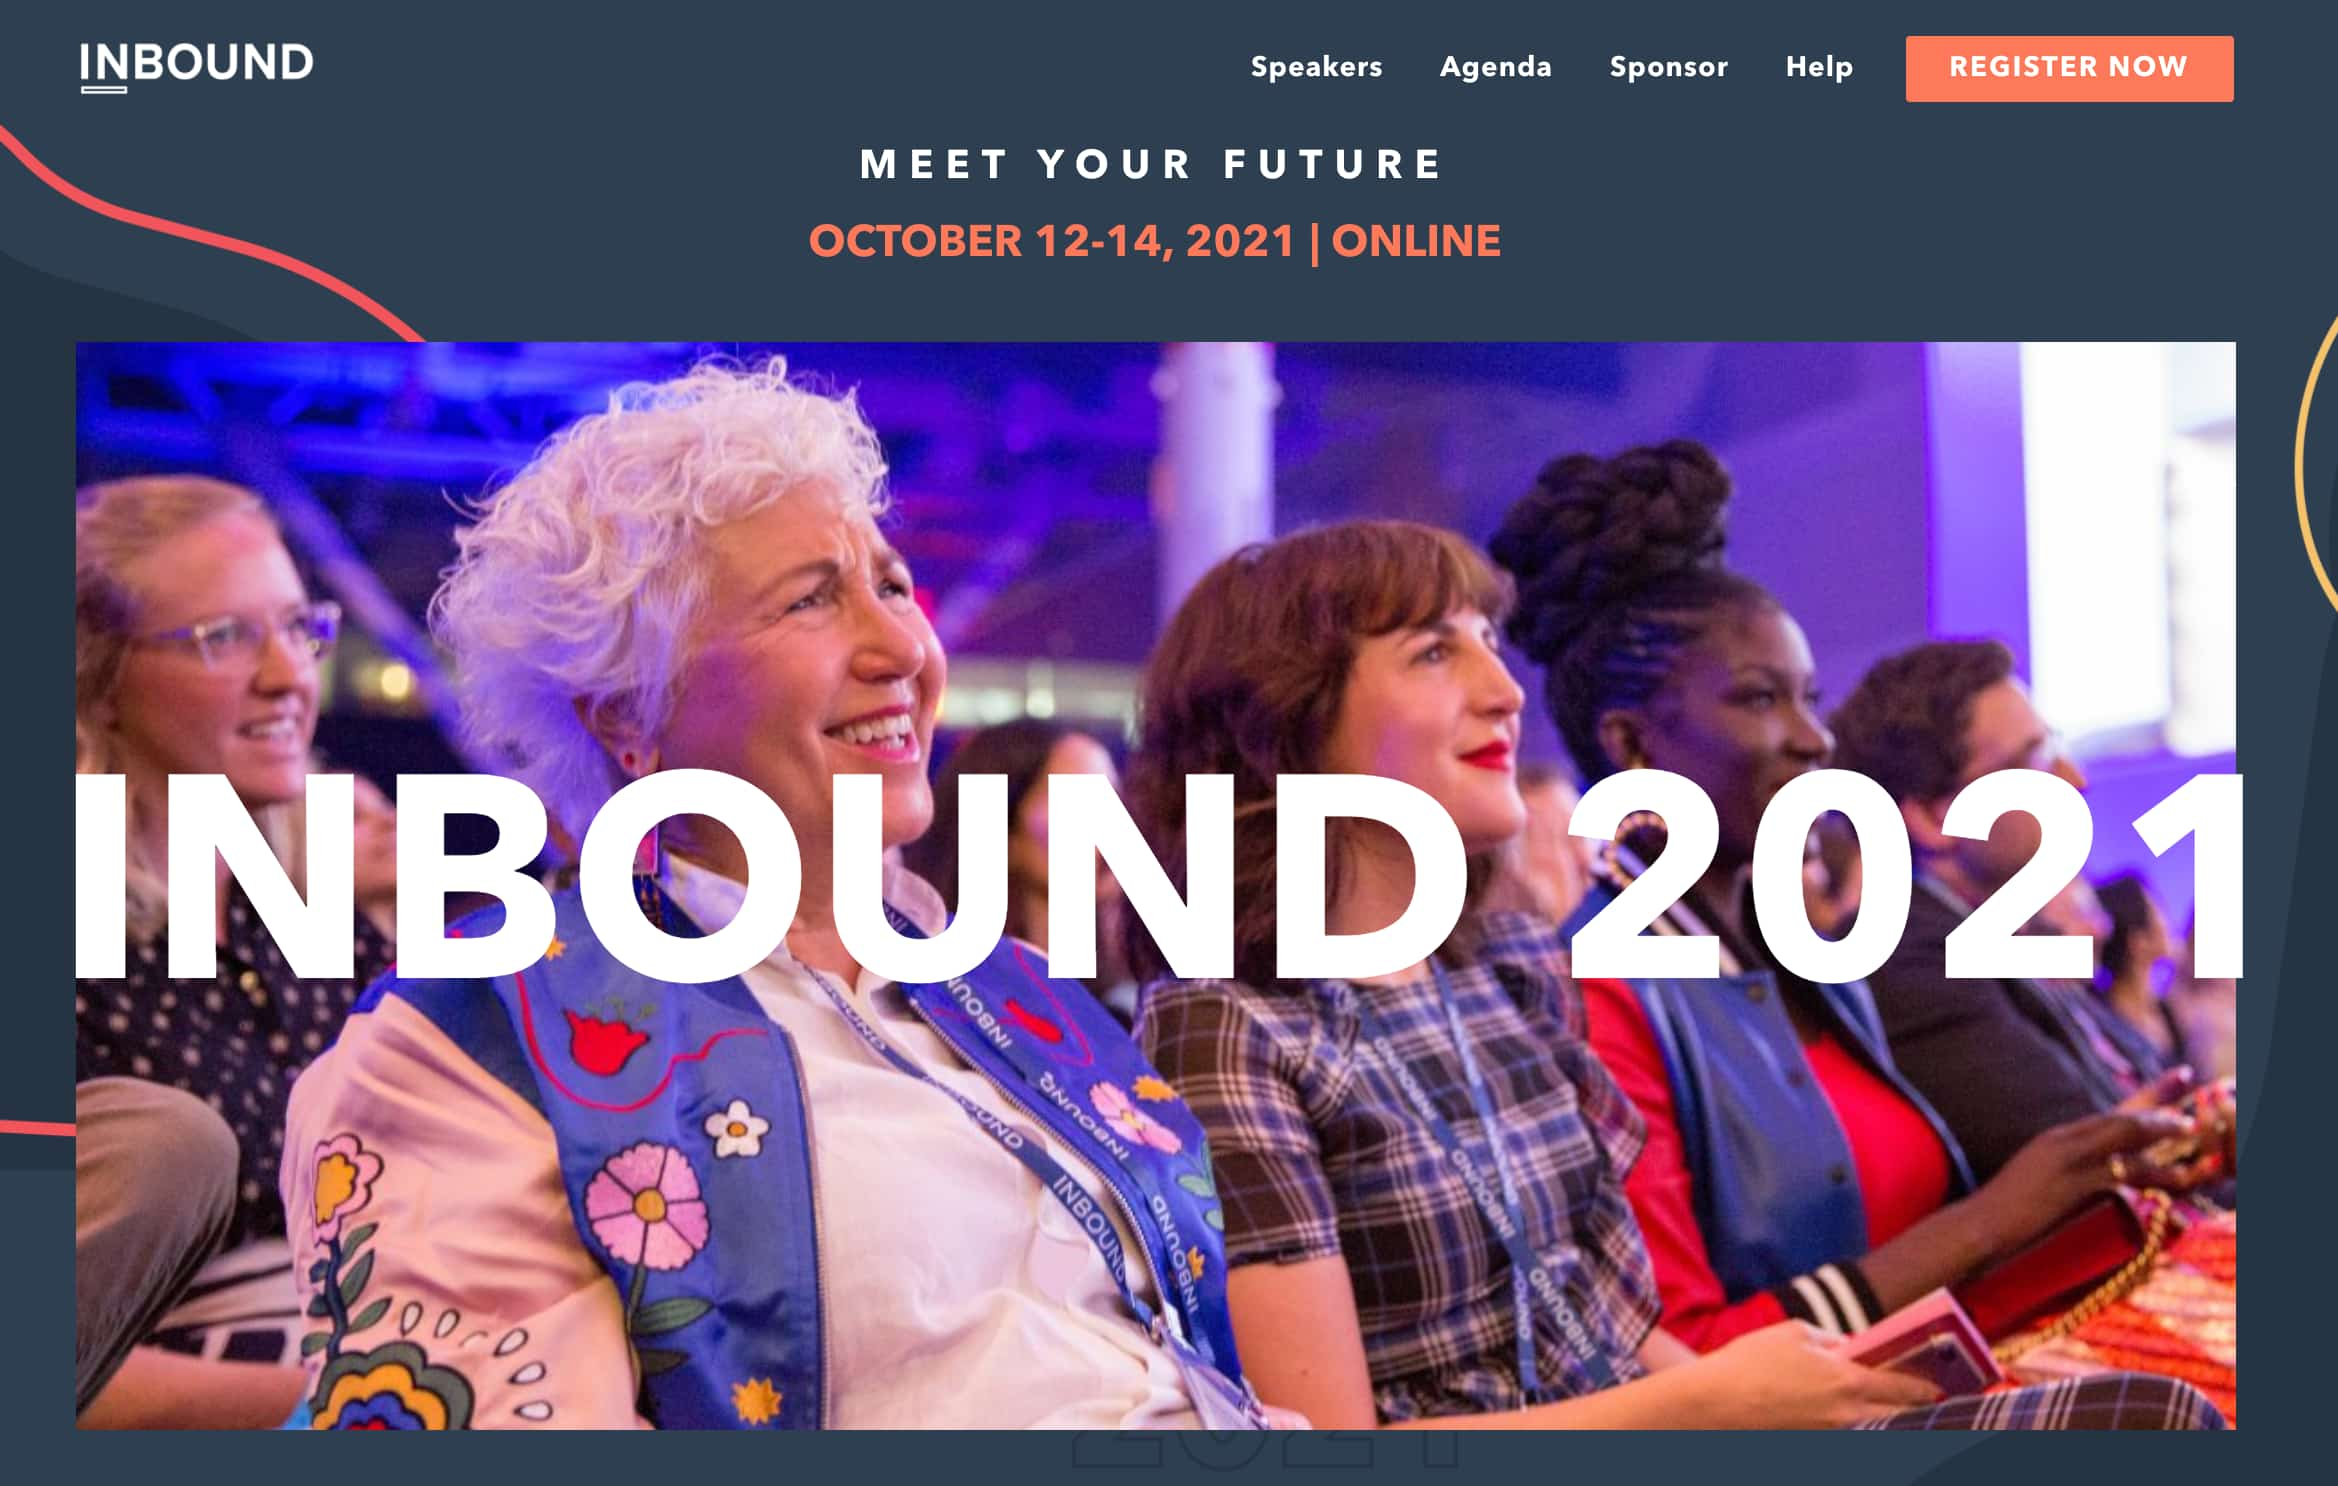 HubSpot inbound 2021 conference website homepage featuring event attendees sitting in the audience